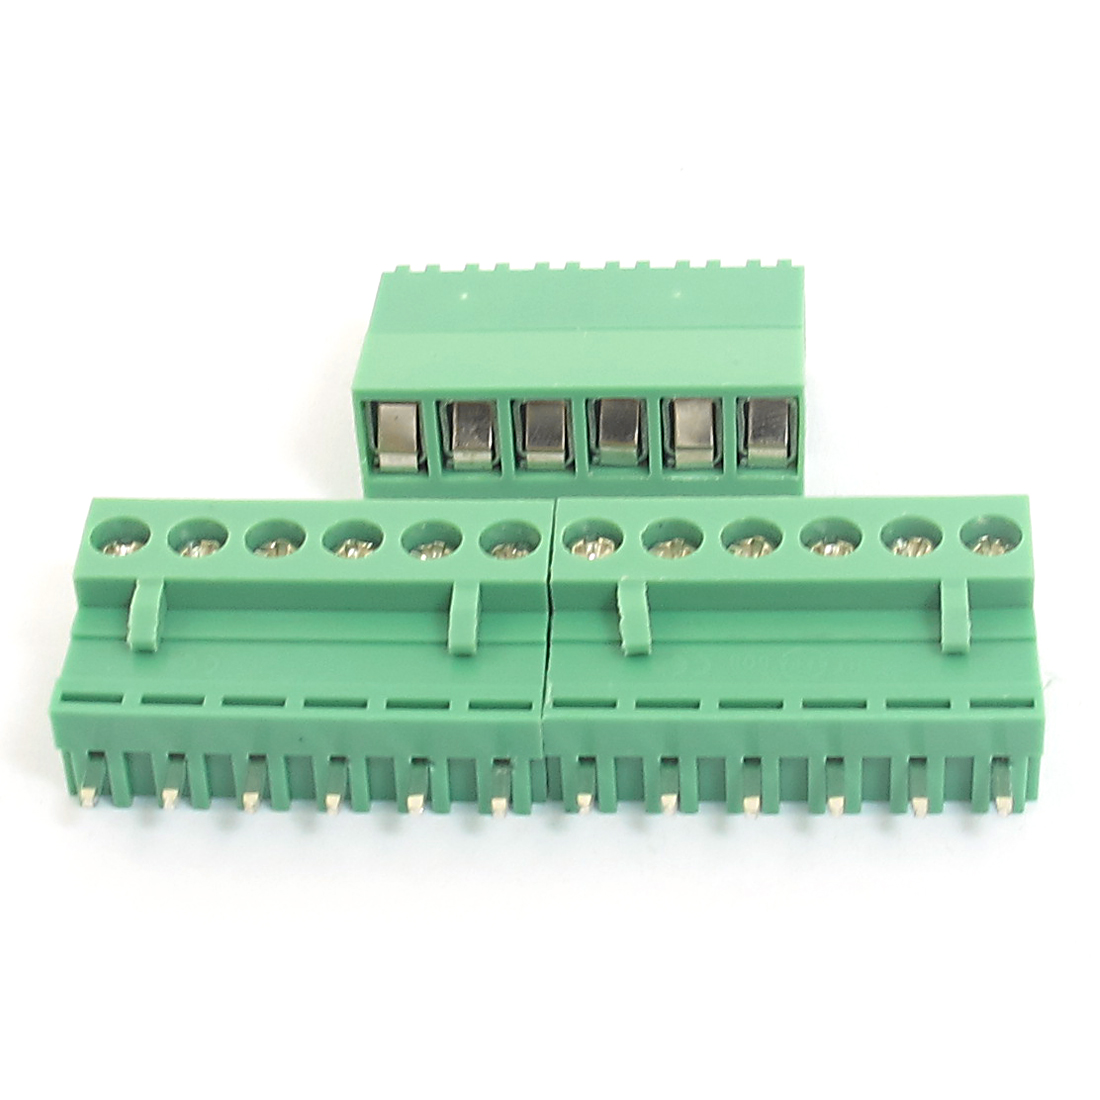 300V 10A 6 Pin Pole 5.08mm Spacing PCB Screw Pluggable Terminal Block Straight Connector 3pcs Green